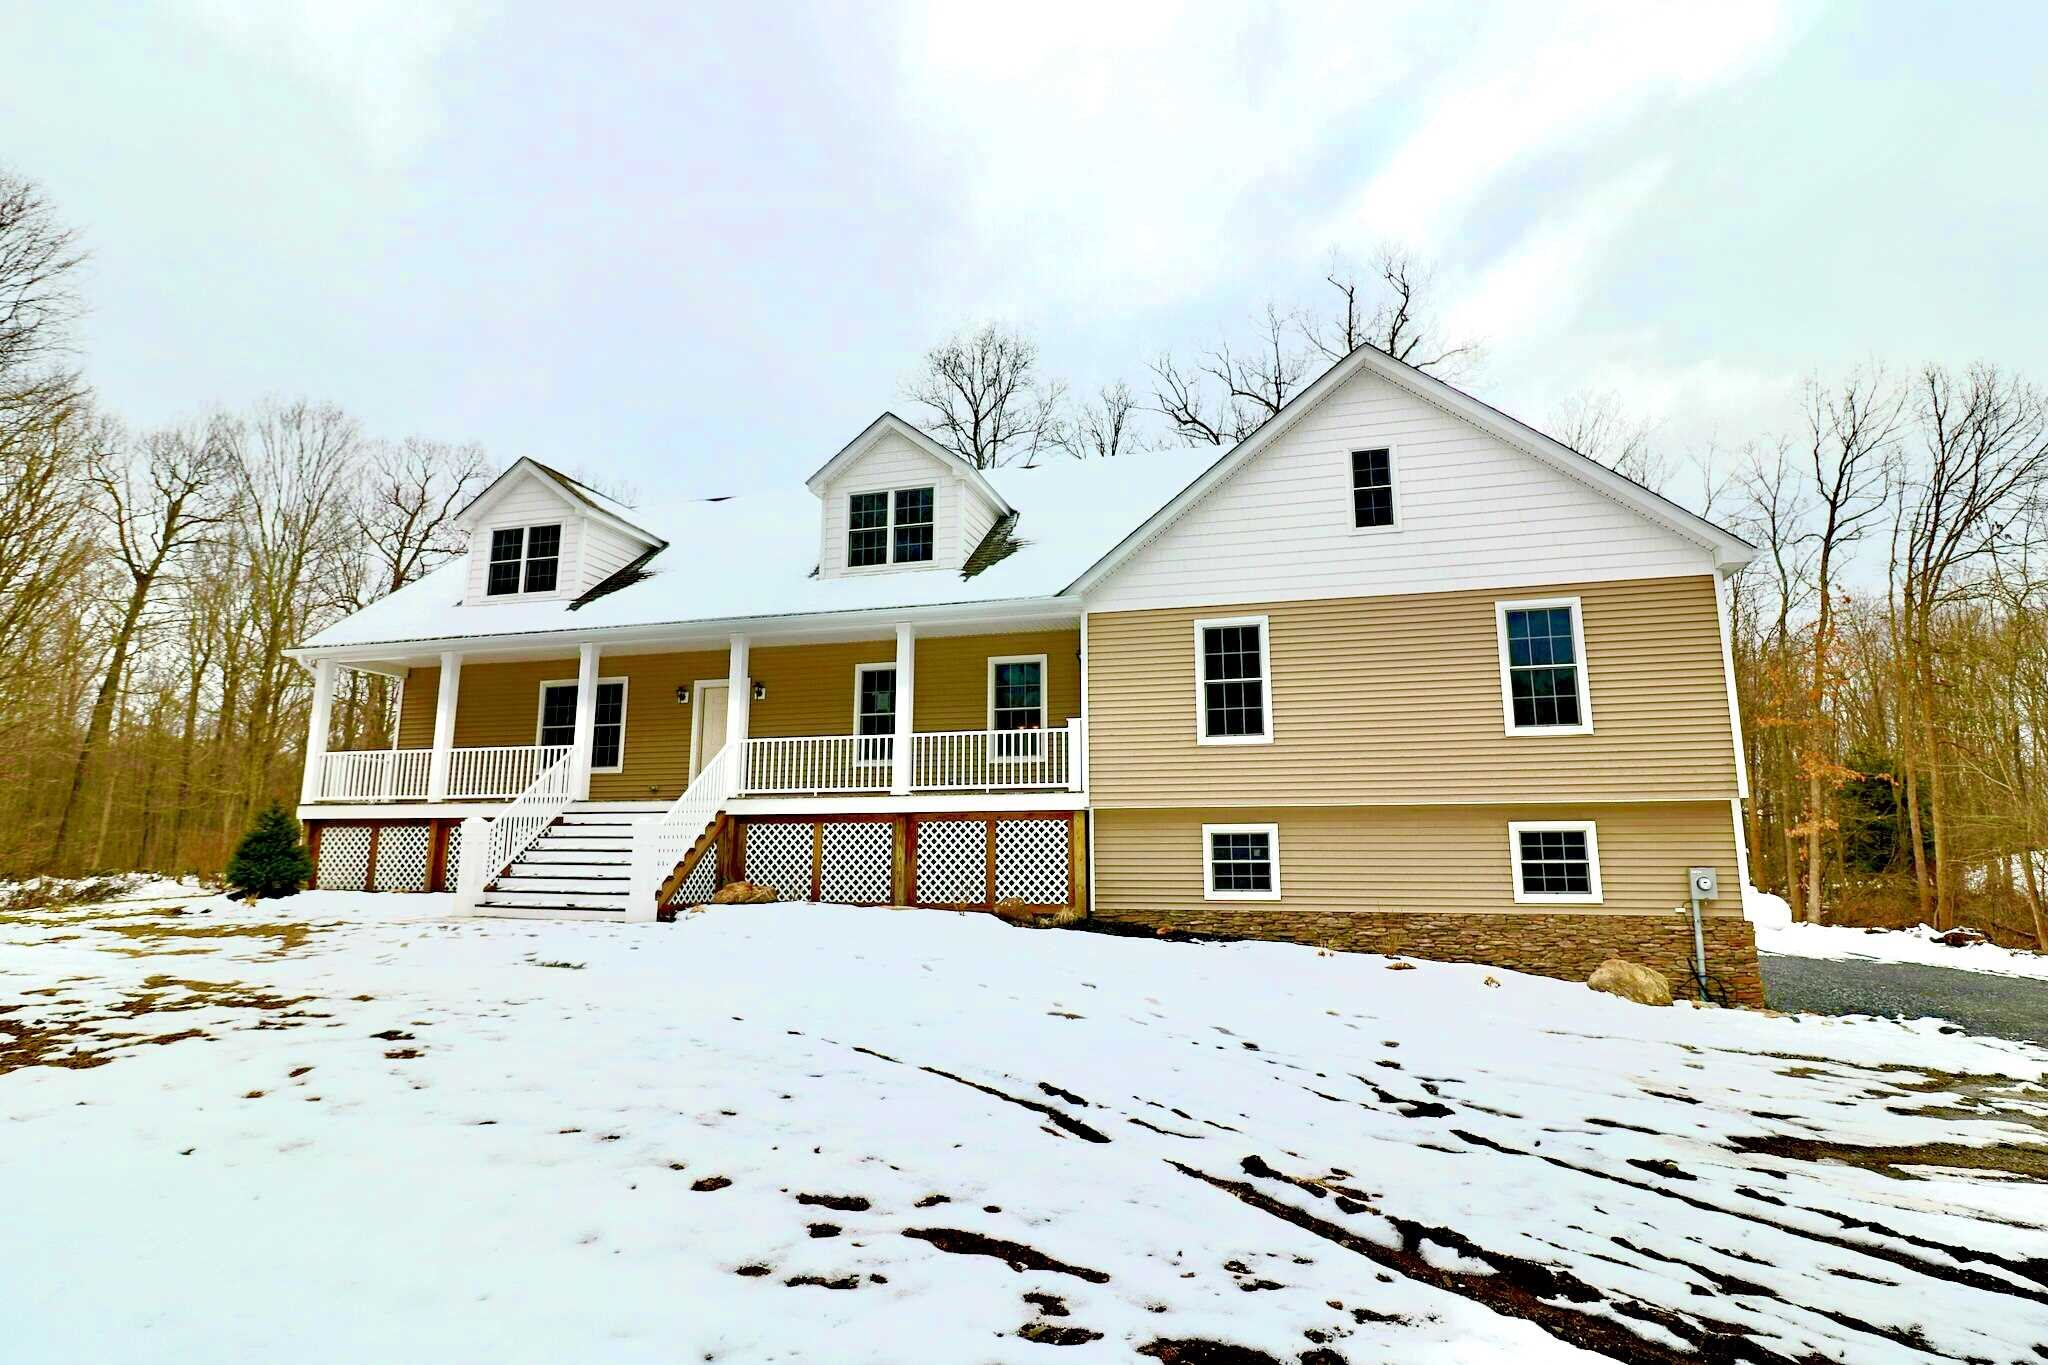 Single Family Home for Sale at 256 LAUER ROAD 256 LAUER ROAD Poughkeepsie, New York 12603 United States